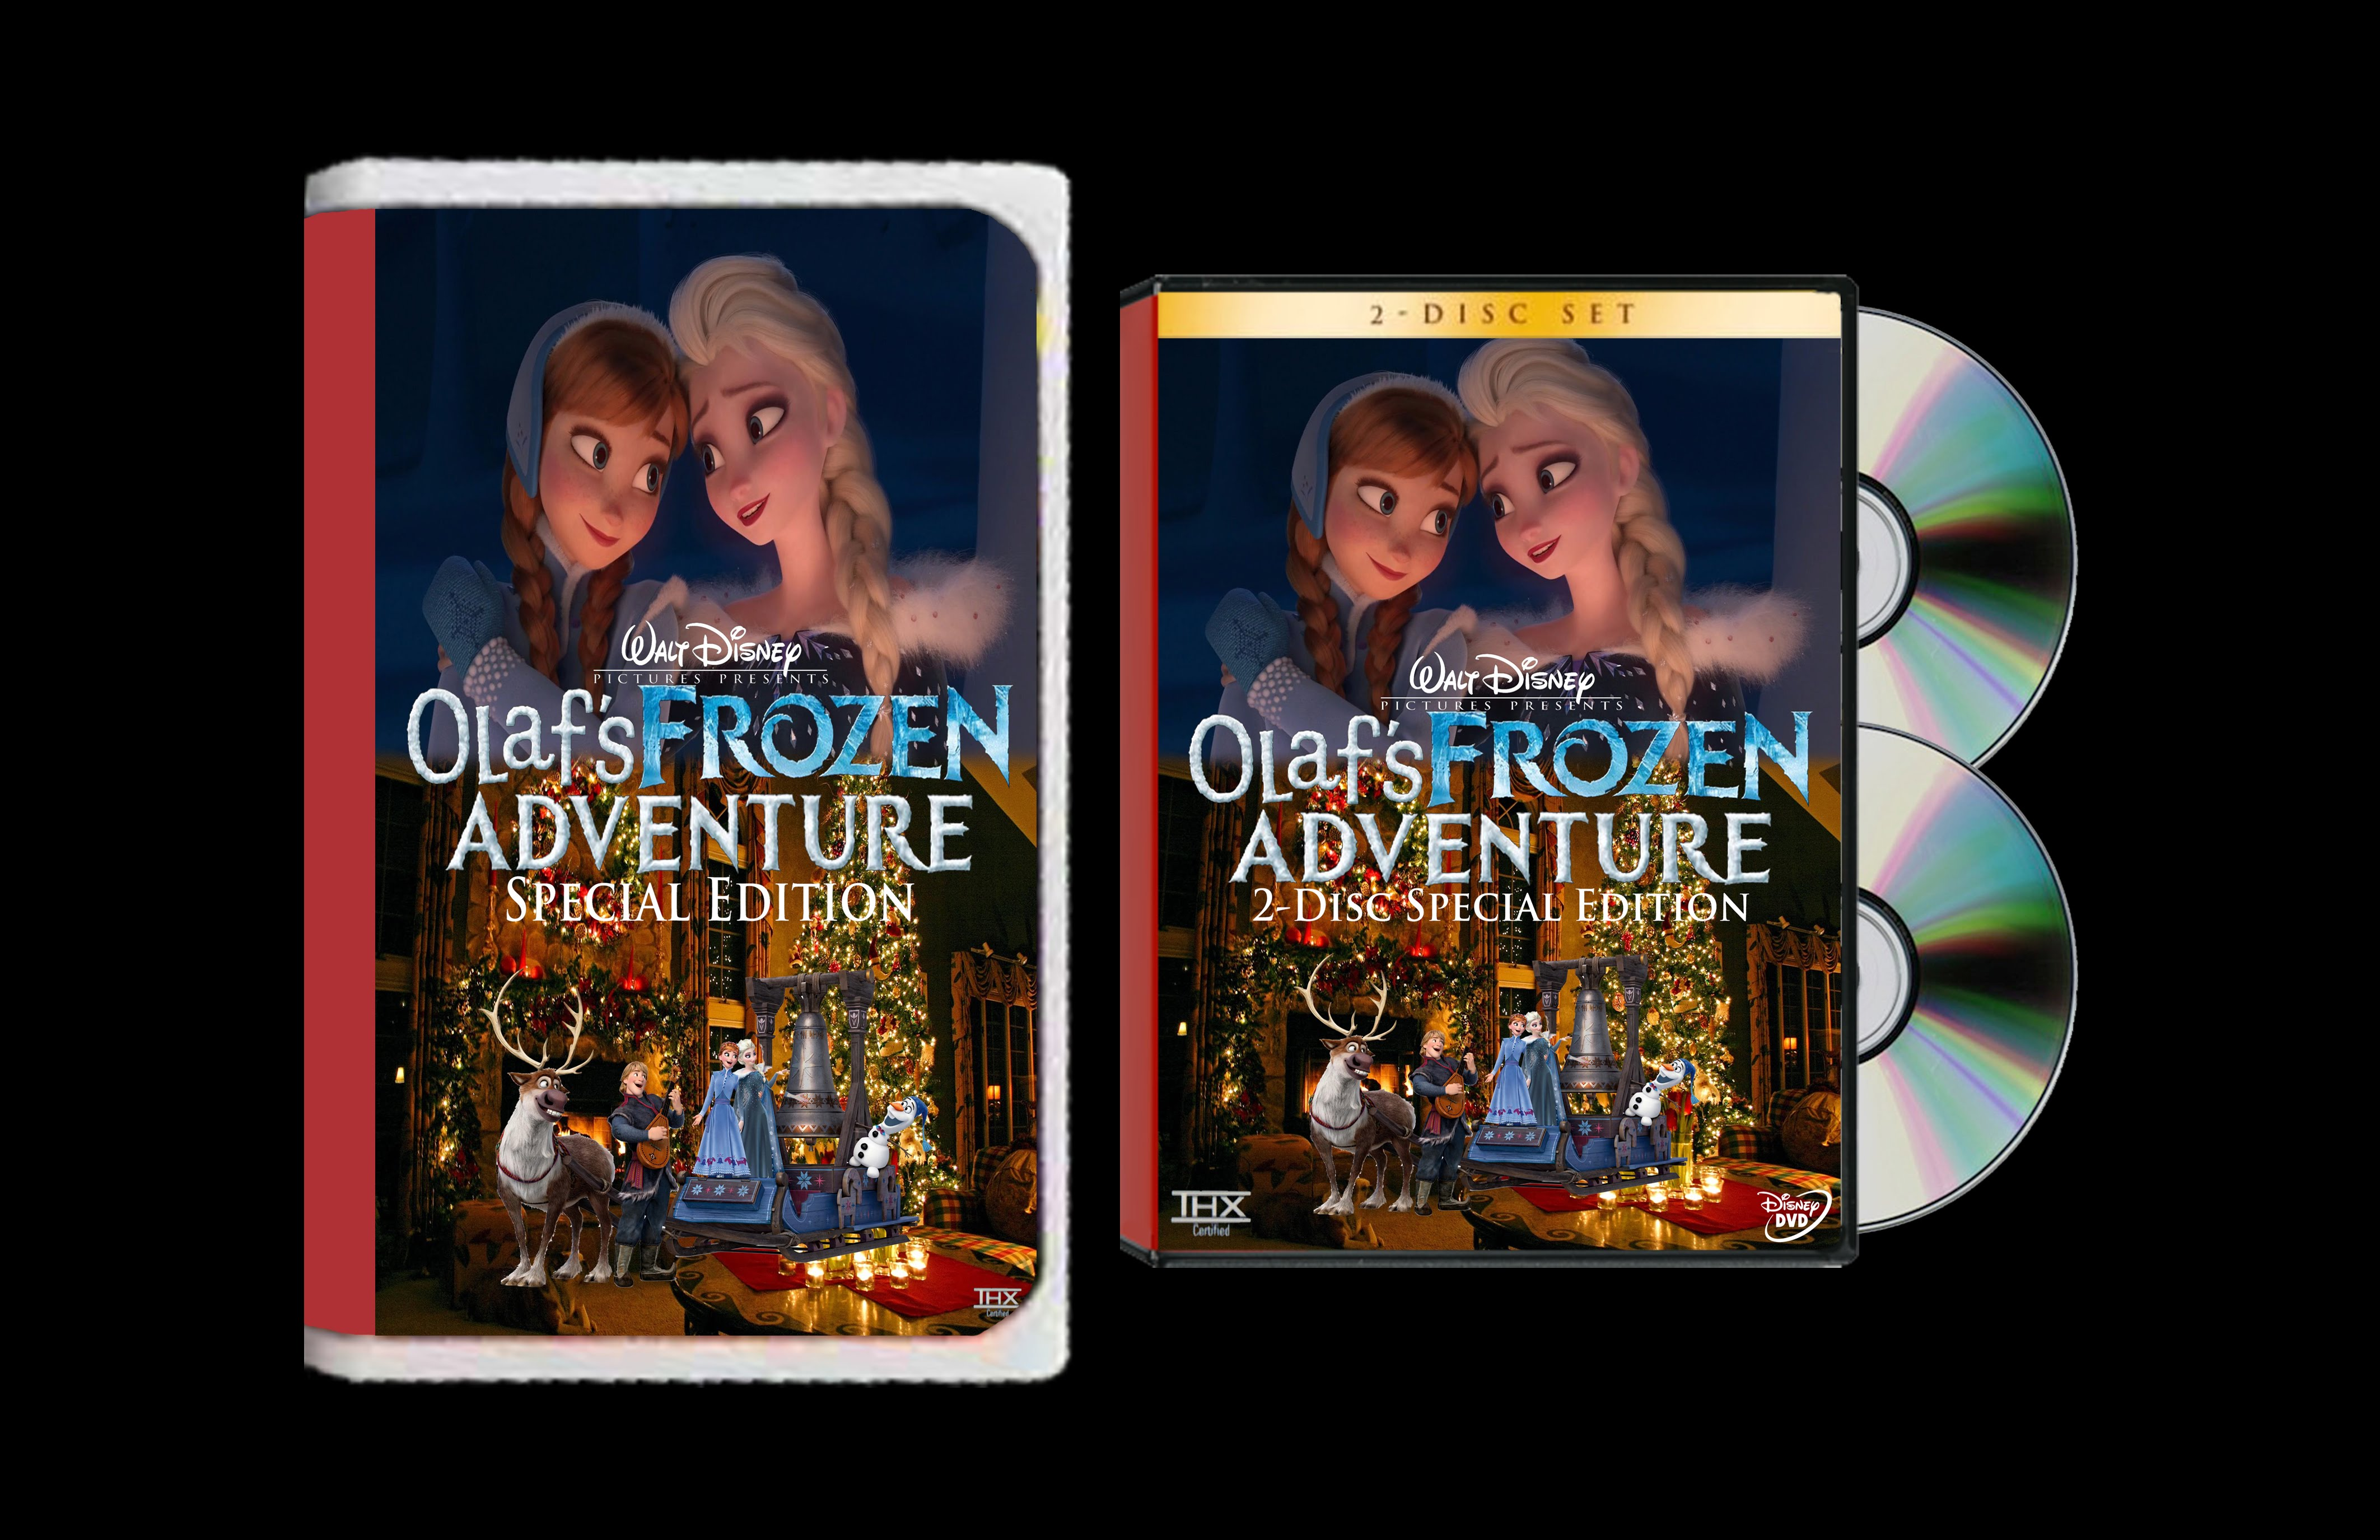 Walt Disney's Olaf's Frozen Adventure: Special Edition (2004) On VHS & DVD